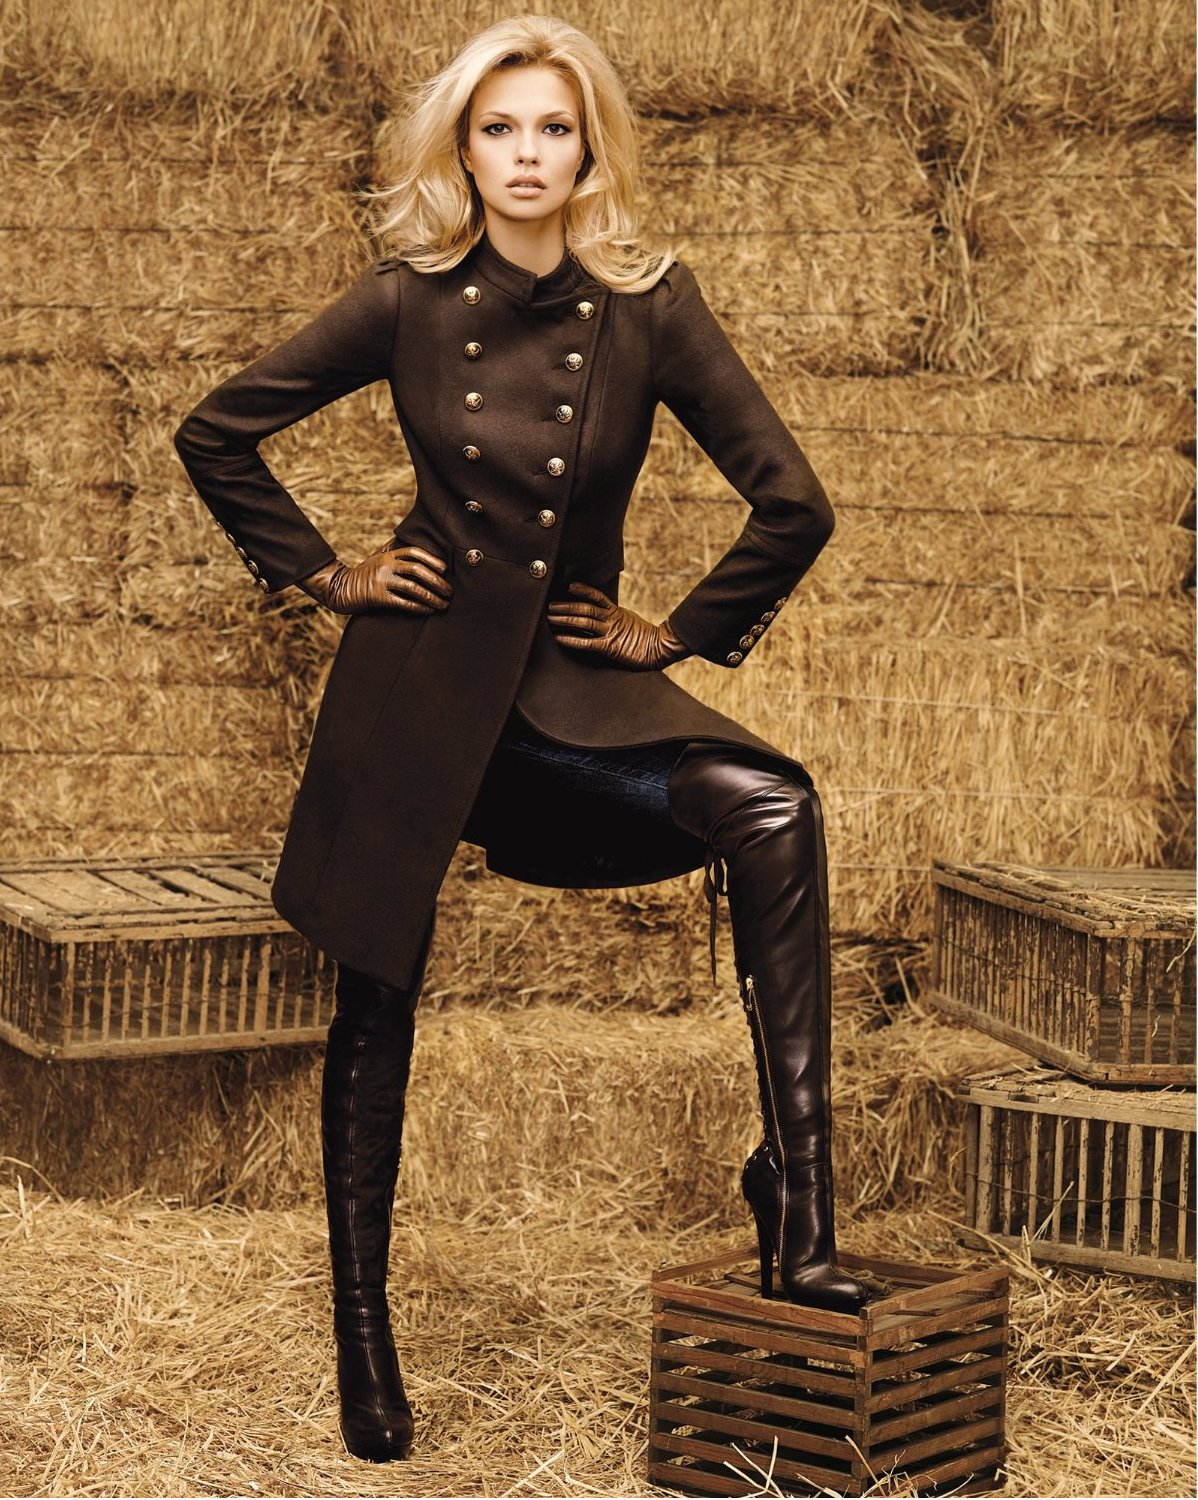 Ladies in leather gloves and boots - Why Do I Have This Love For Boots